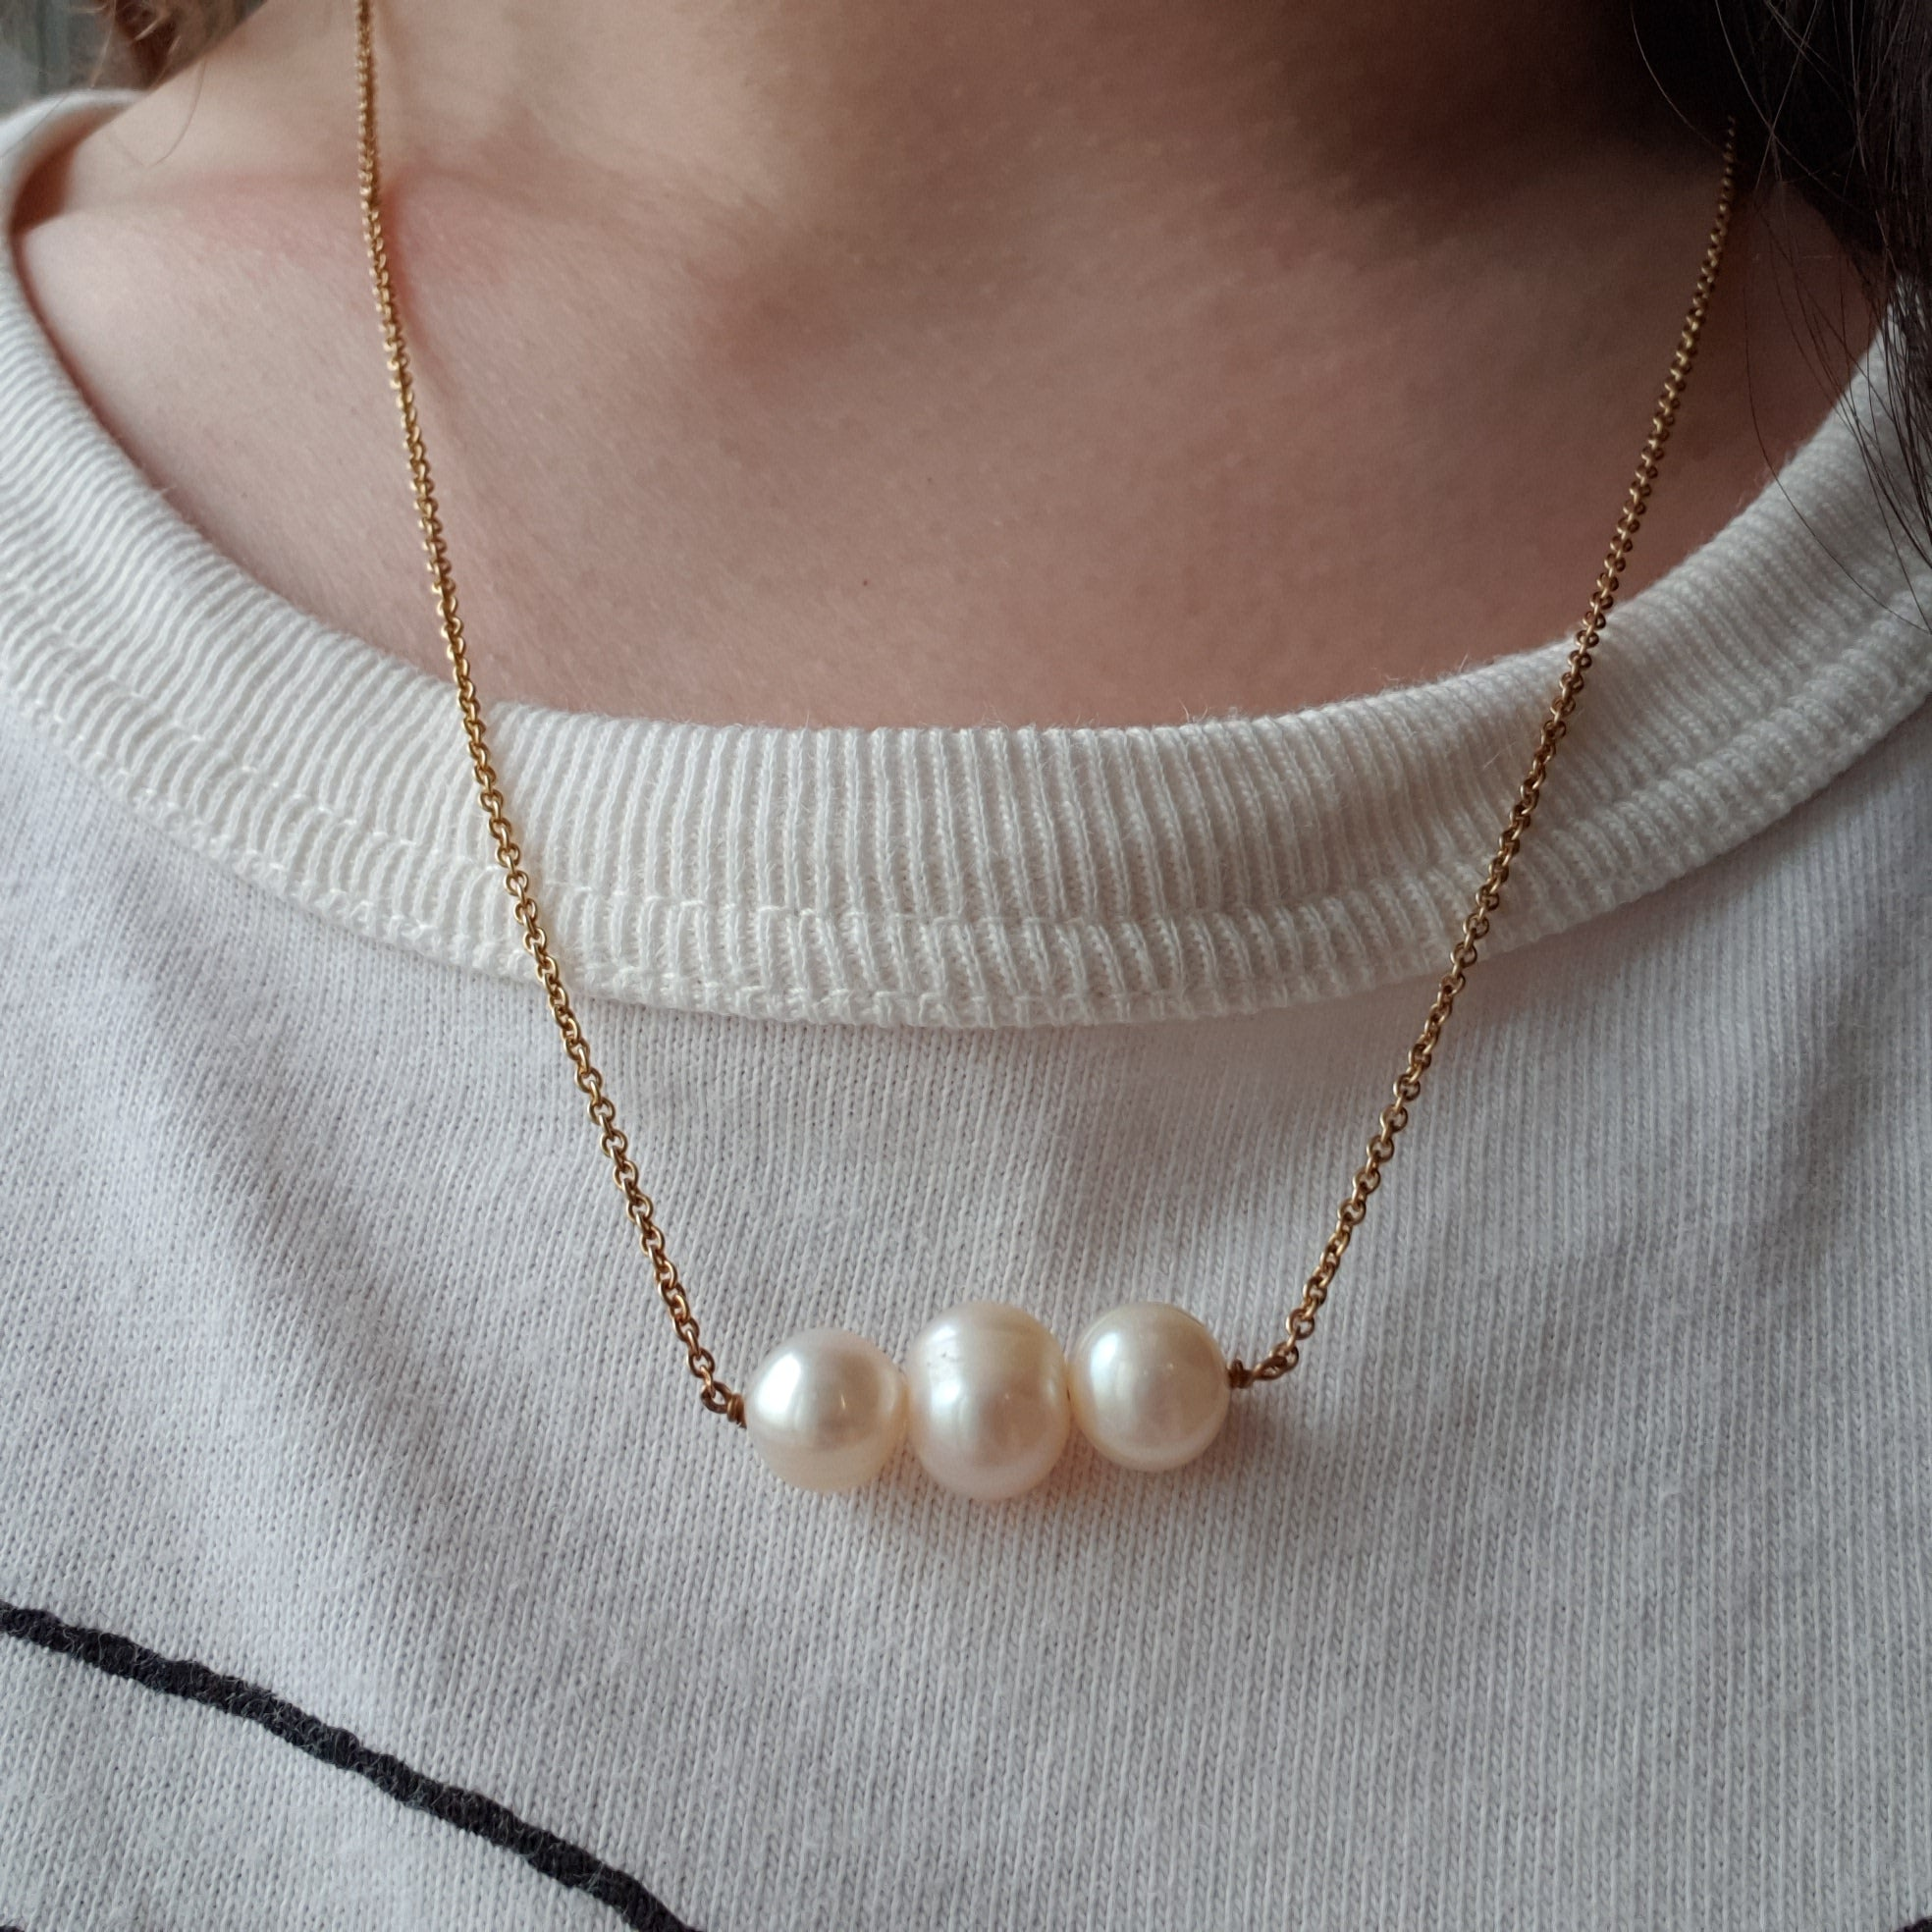 The Vionnet: Yellow Gold-Toned Necklace with Three Freshwater Pearls